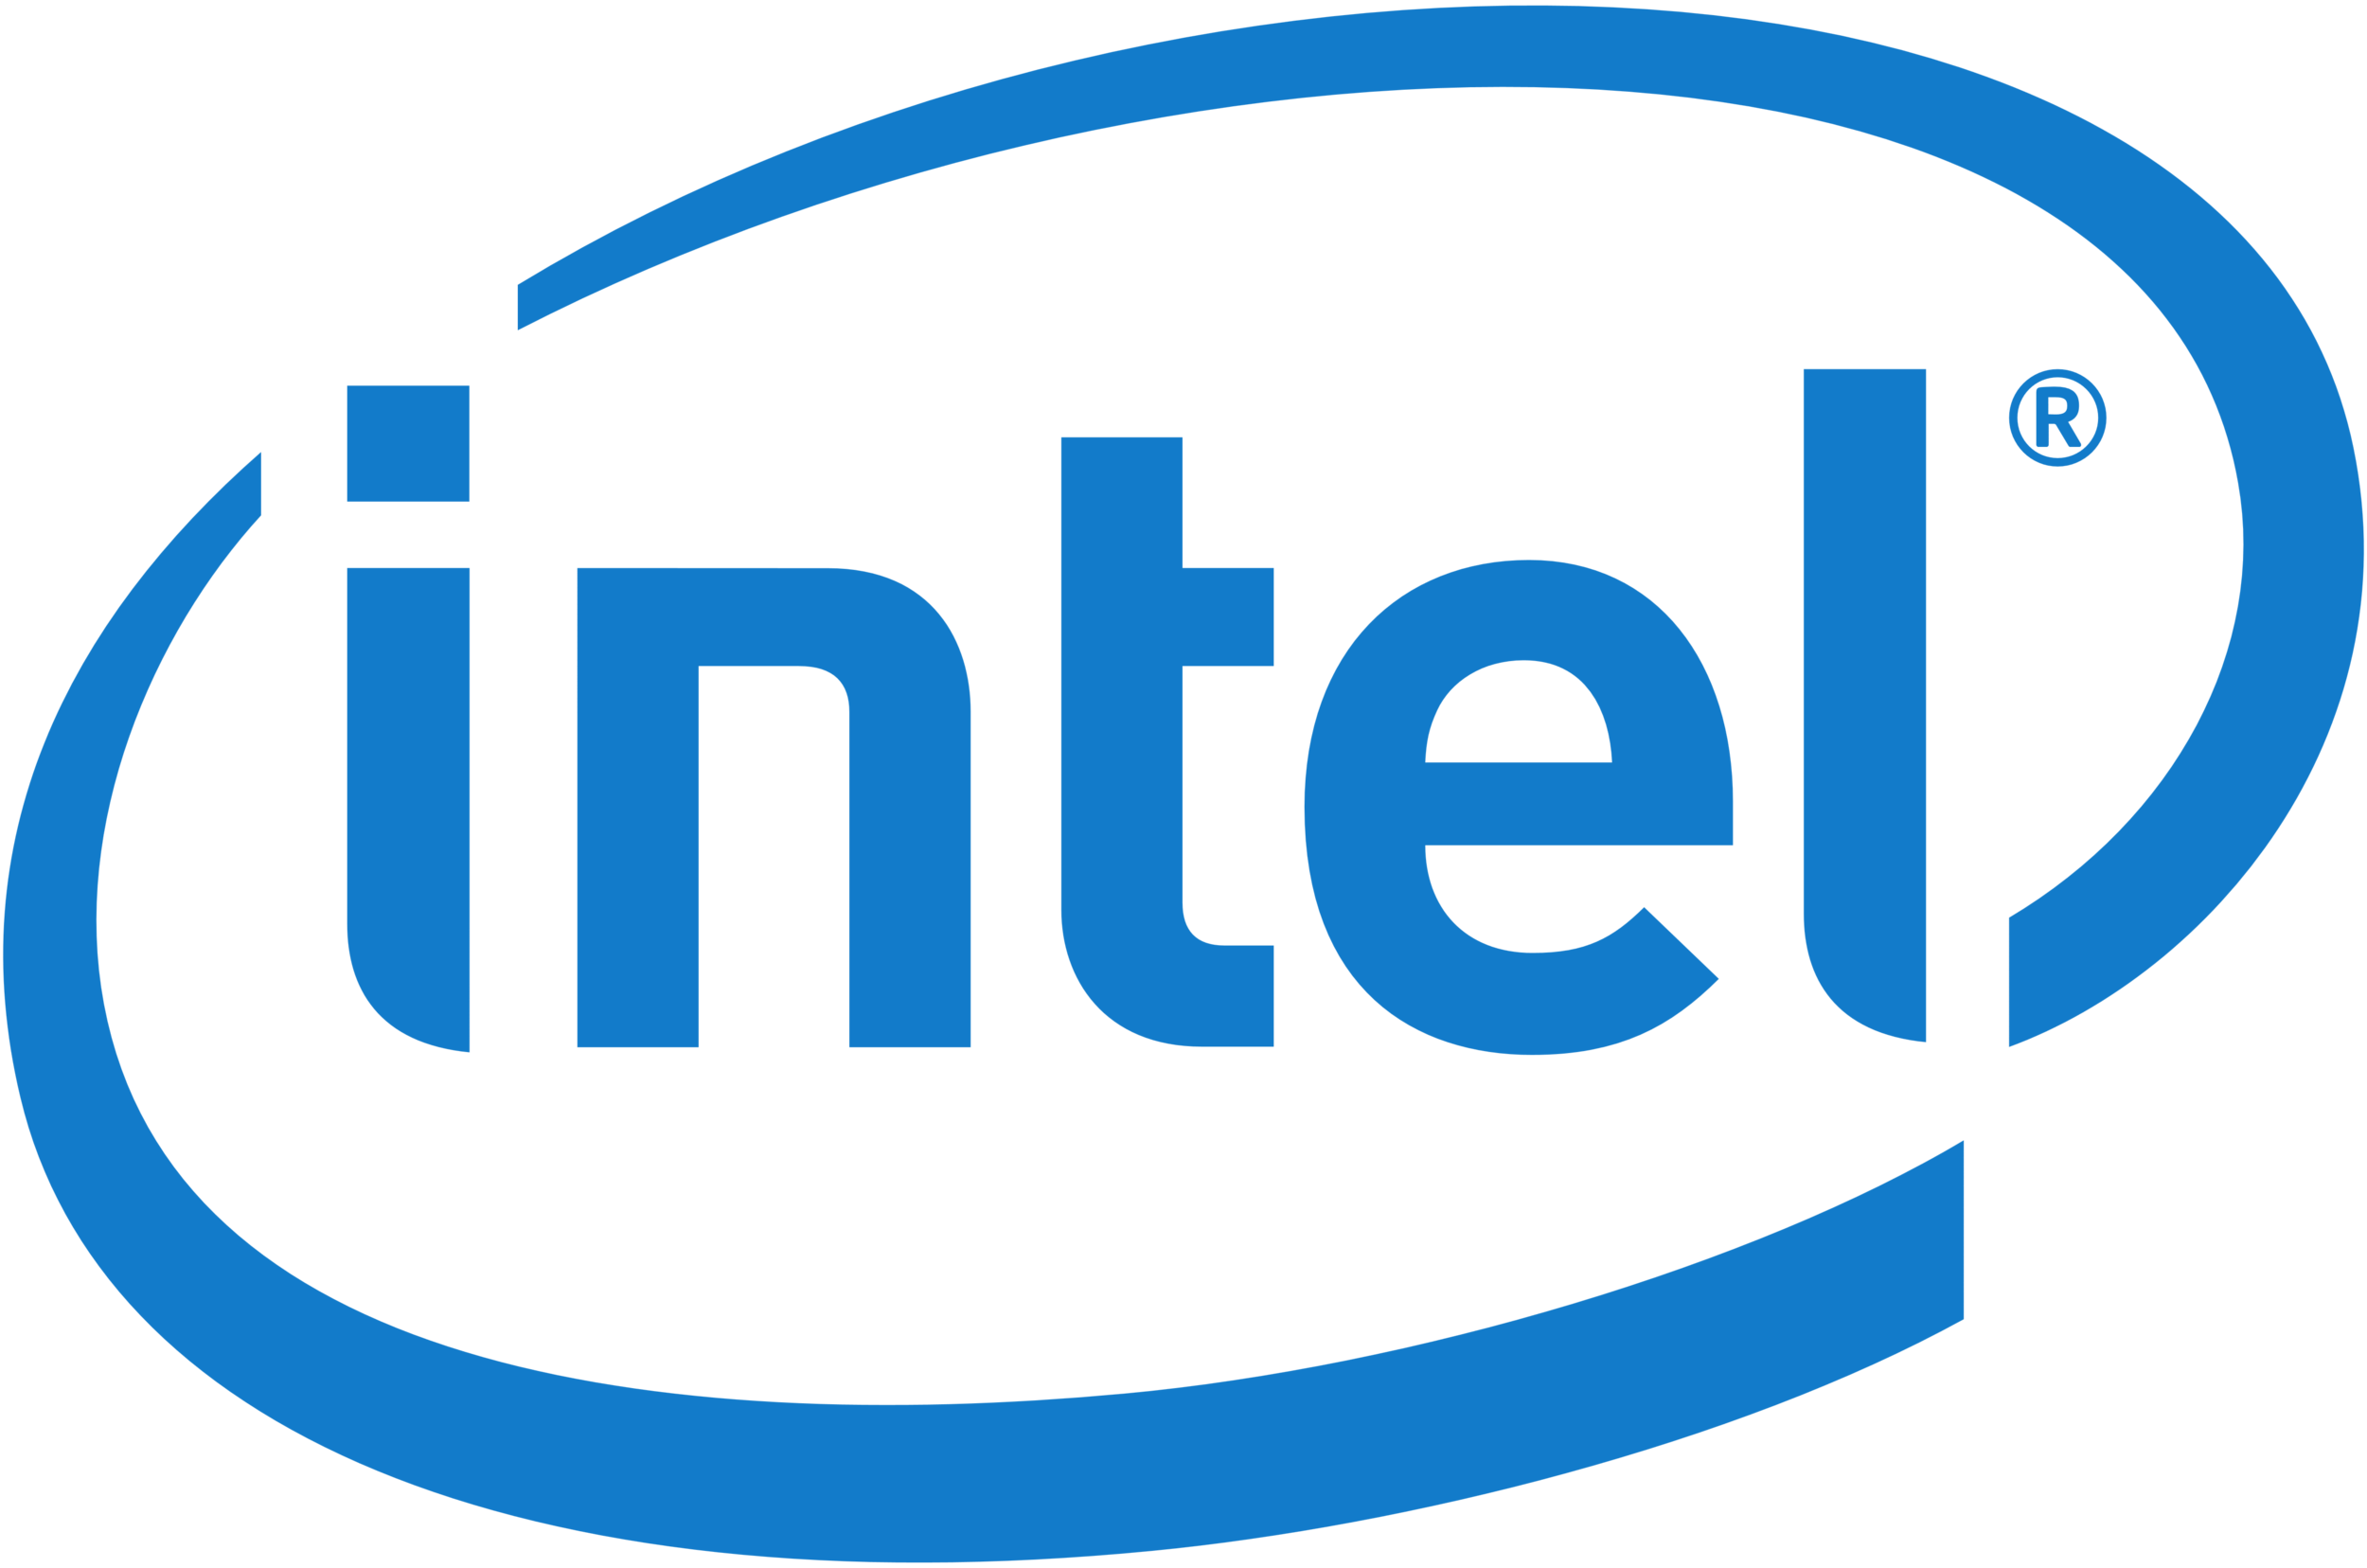 Intel_logo_png_transparent_huge.png